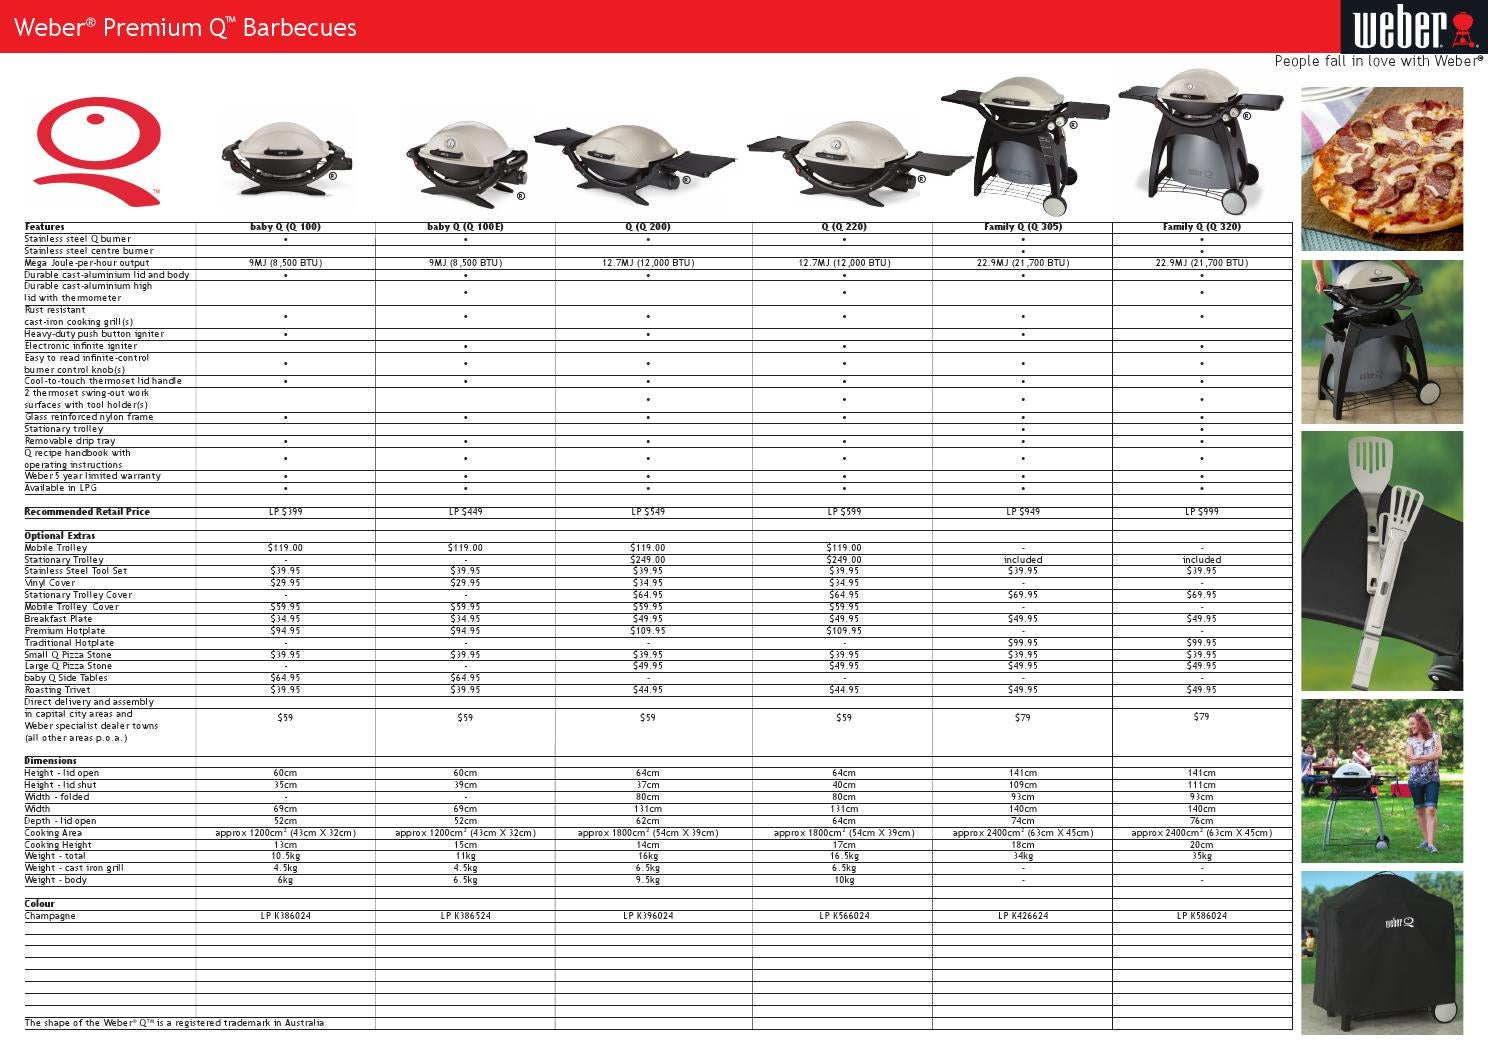 Nz Compare All Q Barbecues By R Mcdonald Weber Issuu